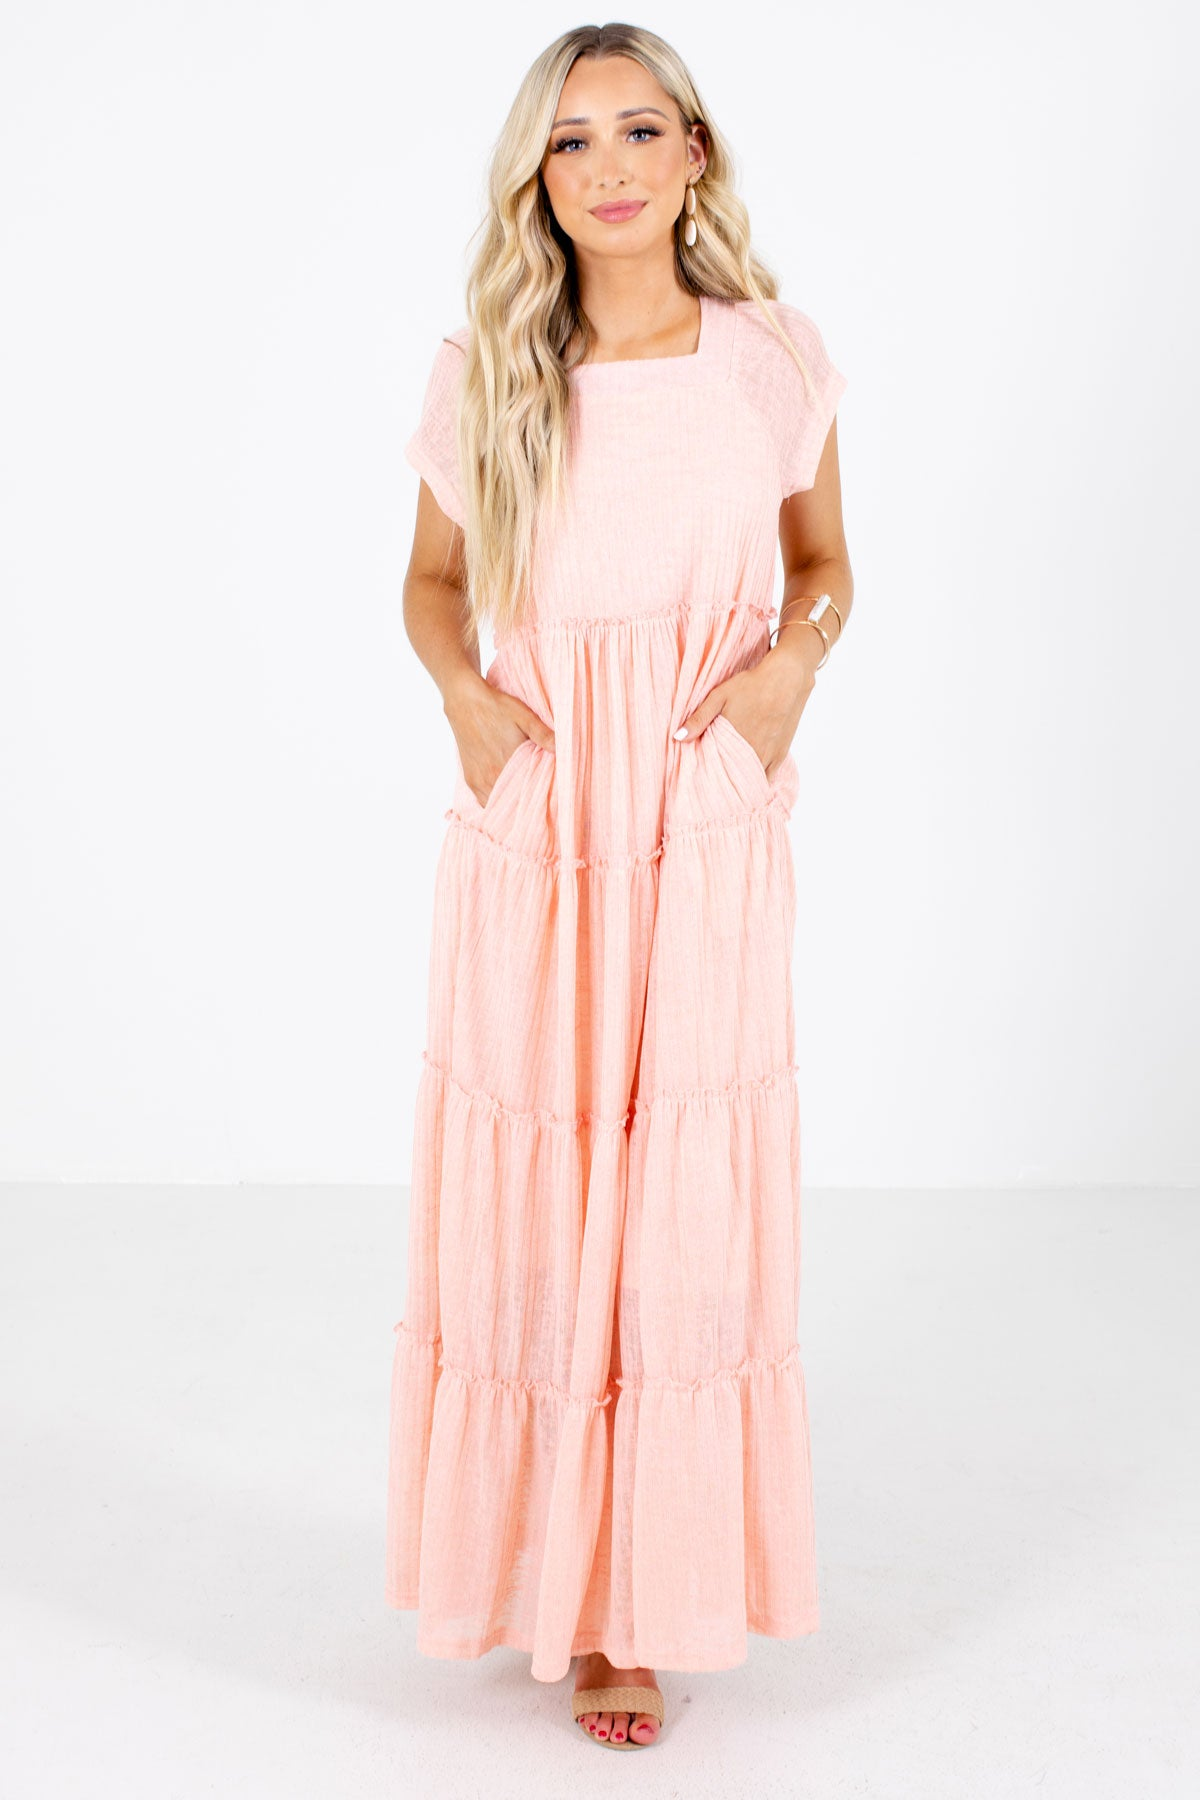 Pink Square Neckline Boutique Maxi Dresses for Women